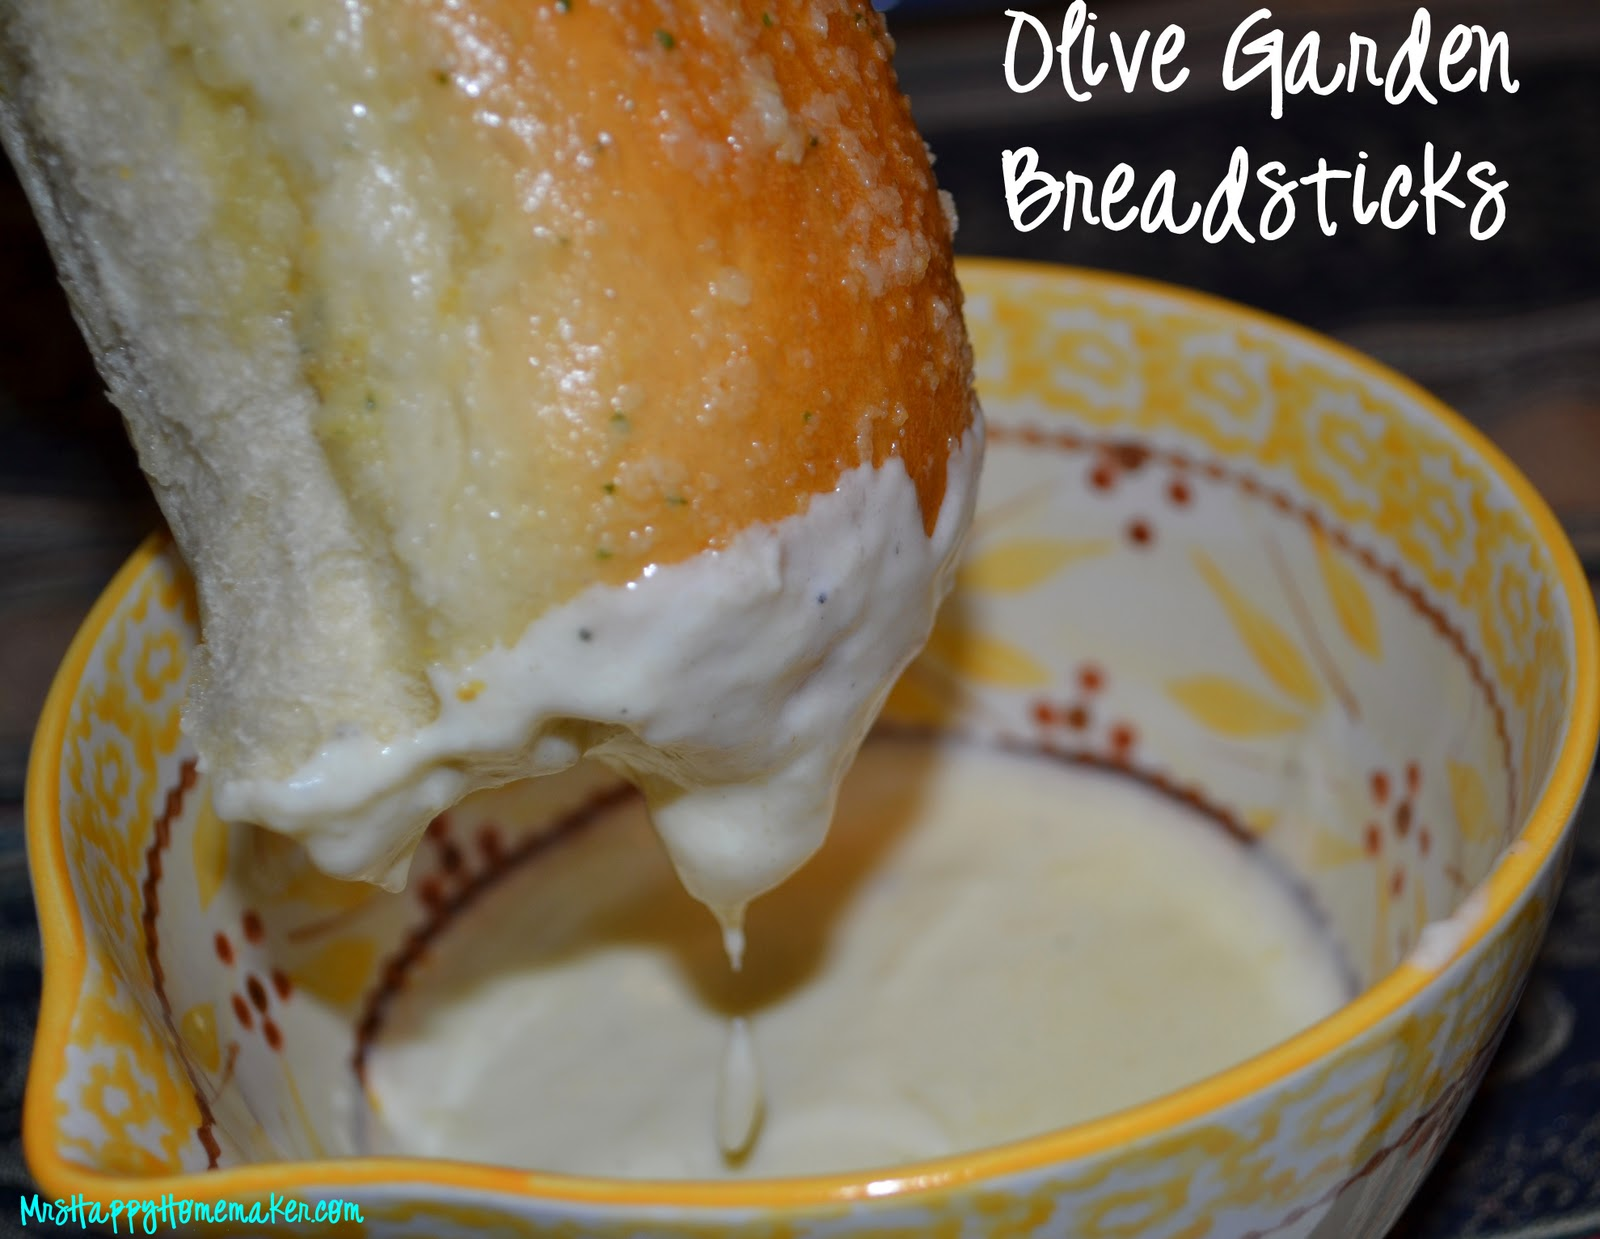 Some Of You Might Even Be More Excited About The Breadstick Recipe Than You  Are About The Alfredo. I Understand. Those Breadsticks Are Good!